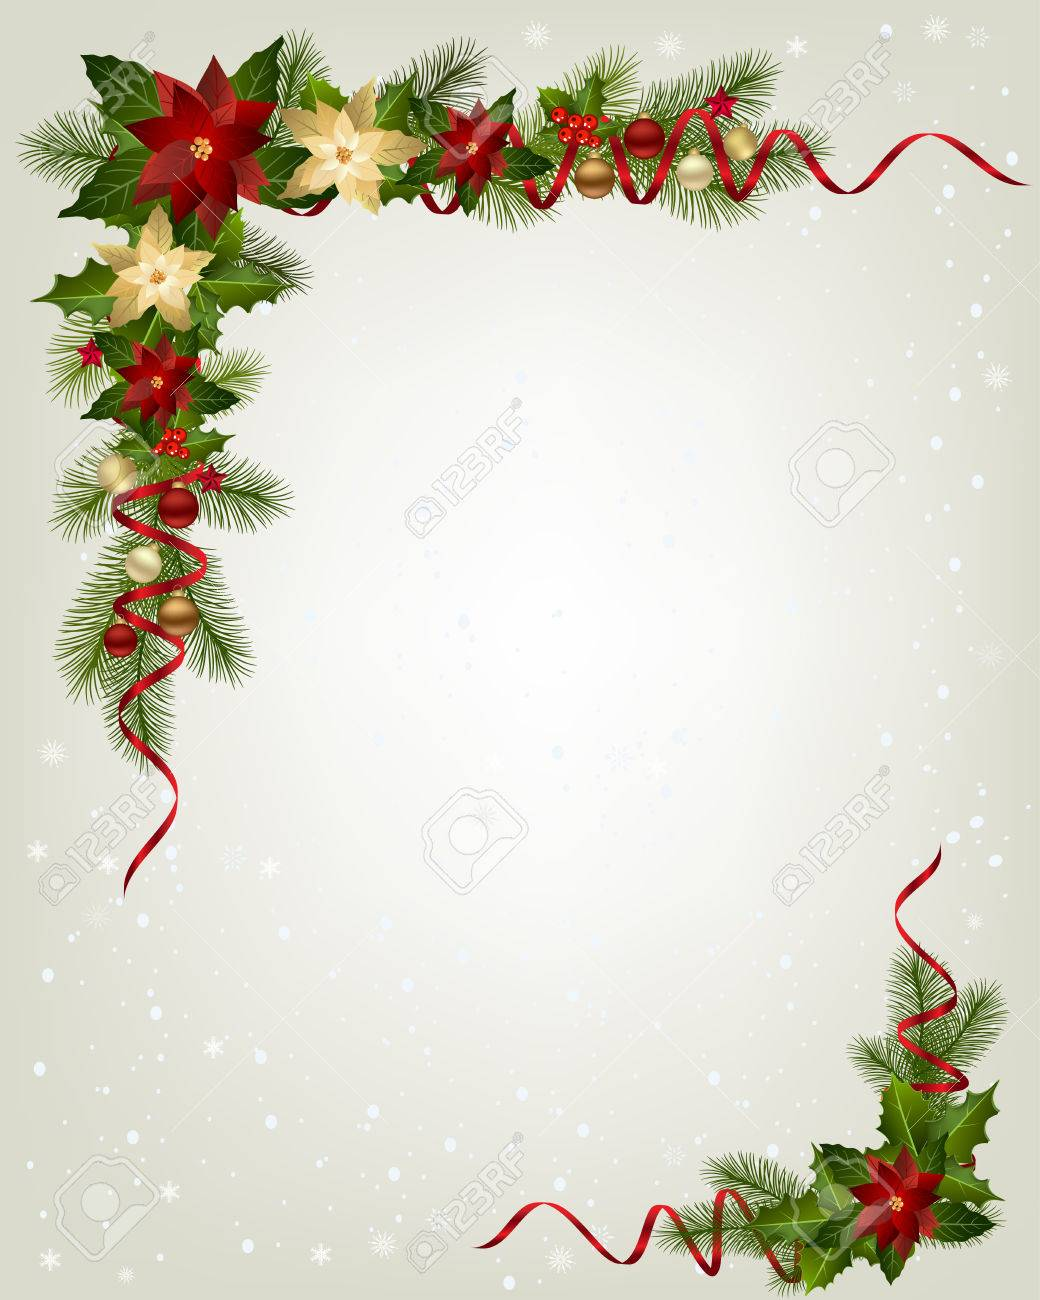 Christmas Garland With Fir Branches And Decorative Elements Royalty Free Cliparts Vectors And Stock Illustration Image 65451498